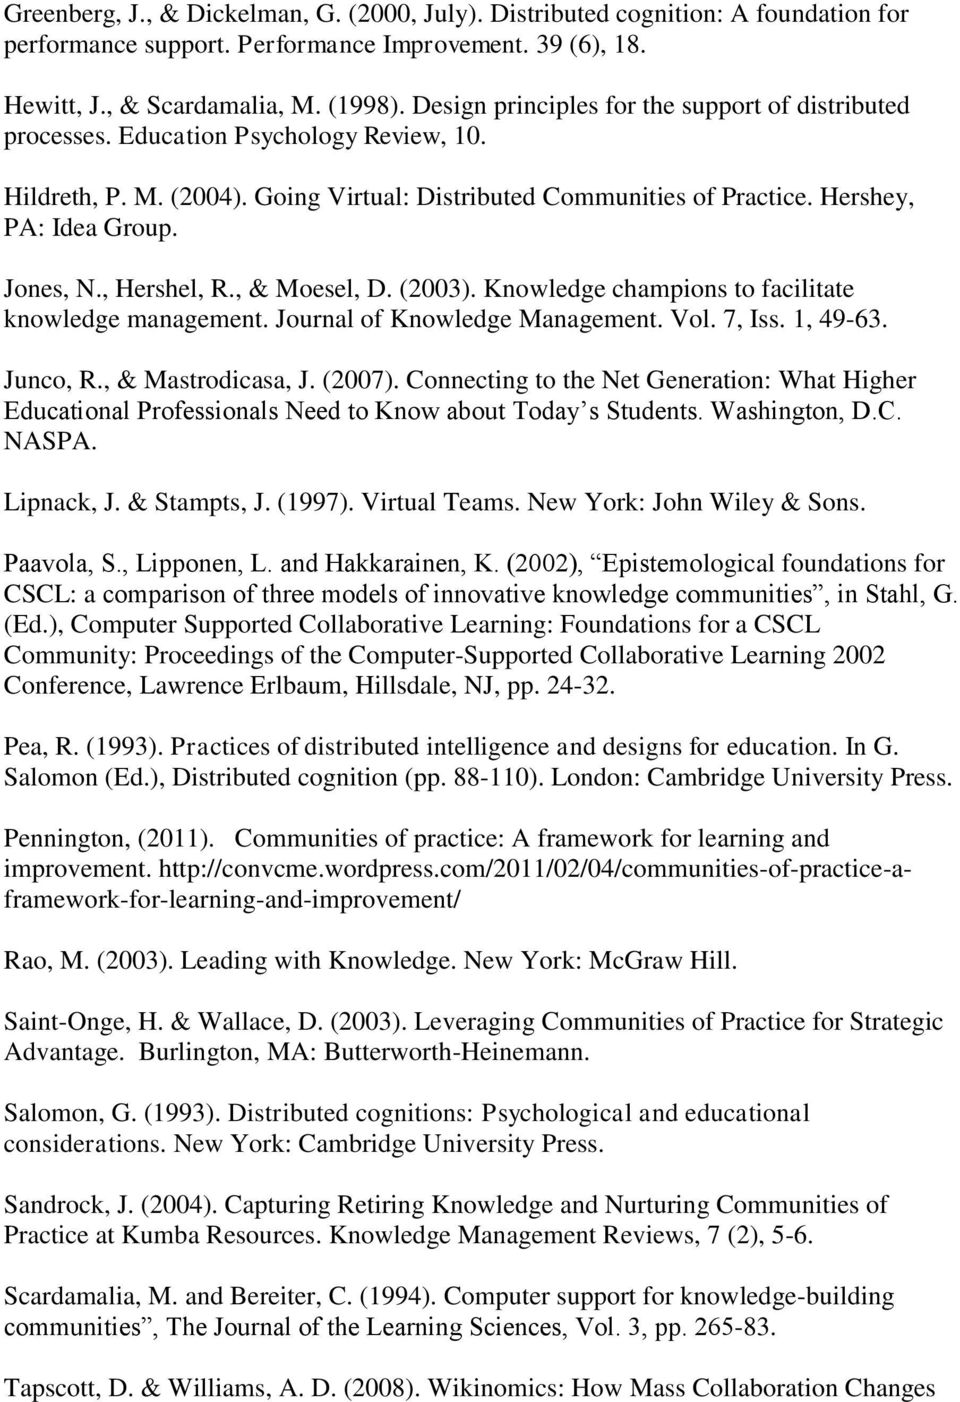 Jones, N., Hershel, R., & Moesel, D. (2003). Knowledge champions to facilitate knowledge management. Journal of Knowledge Management. Vol. 7, Iss. 1, 49-63. Junco, R., & Mastrodicasa, J. (2007).